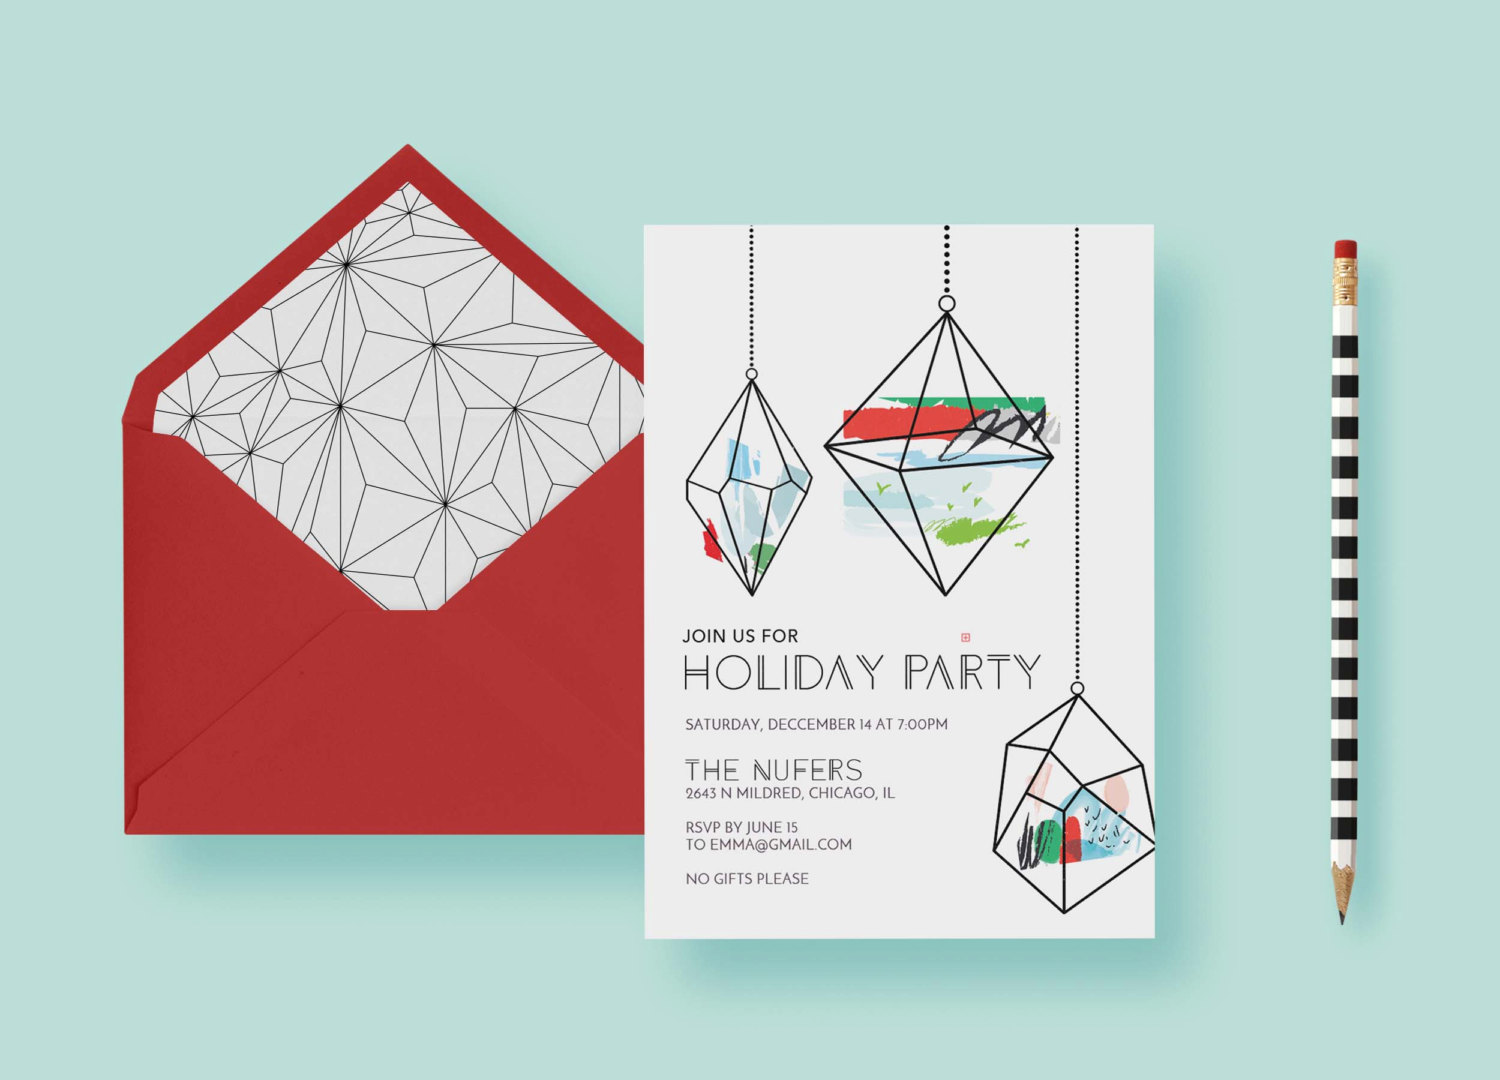 Christmas Party Invitation Free Template free animated ecards funny ...